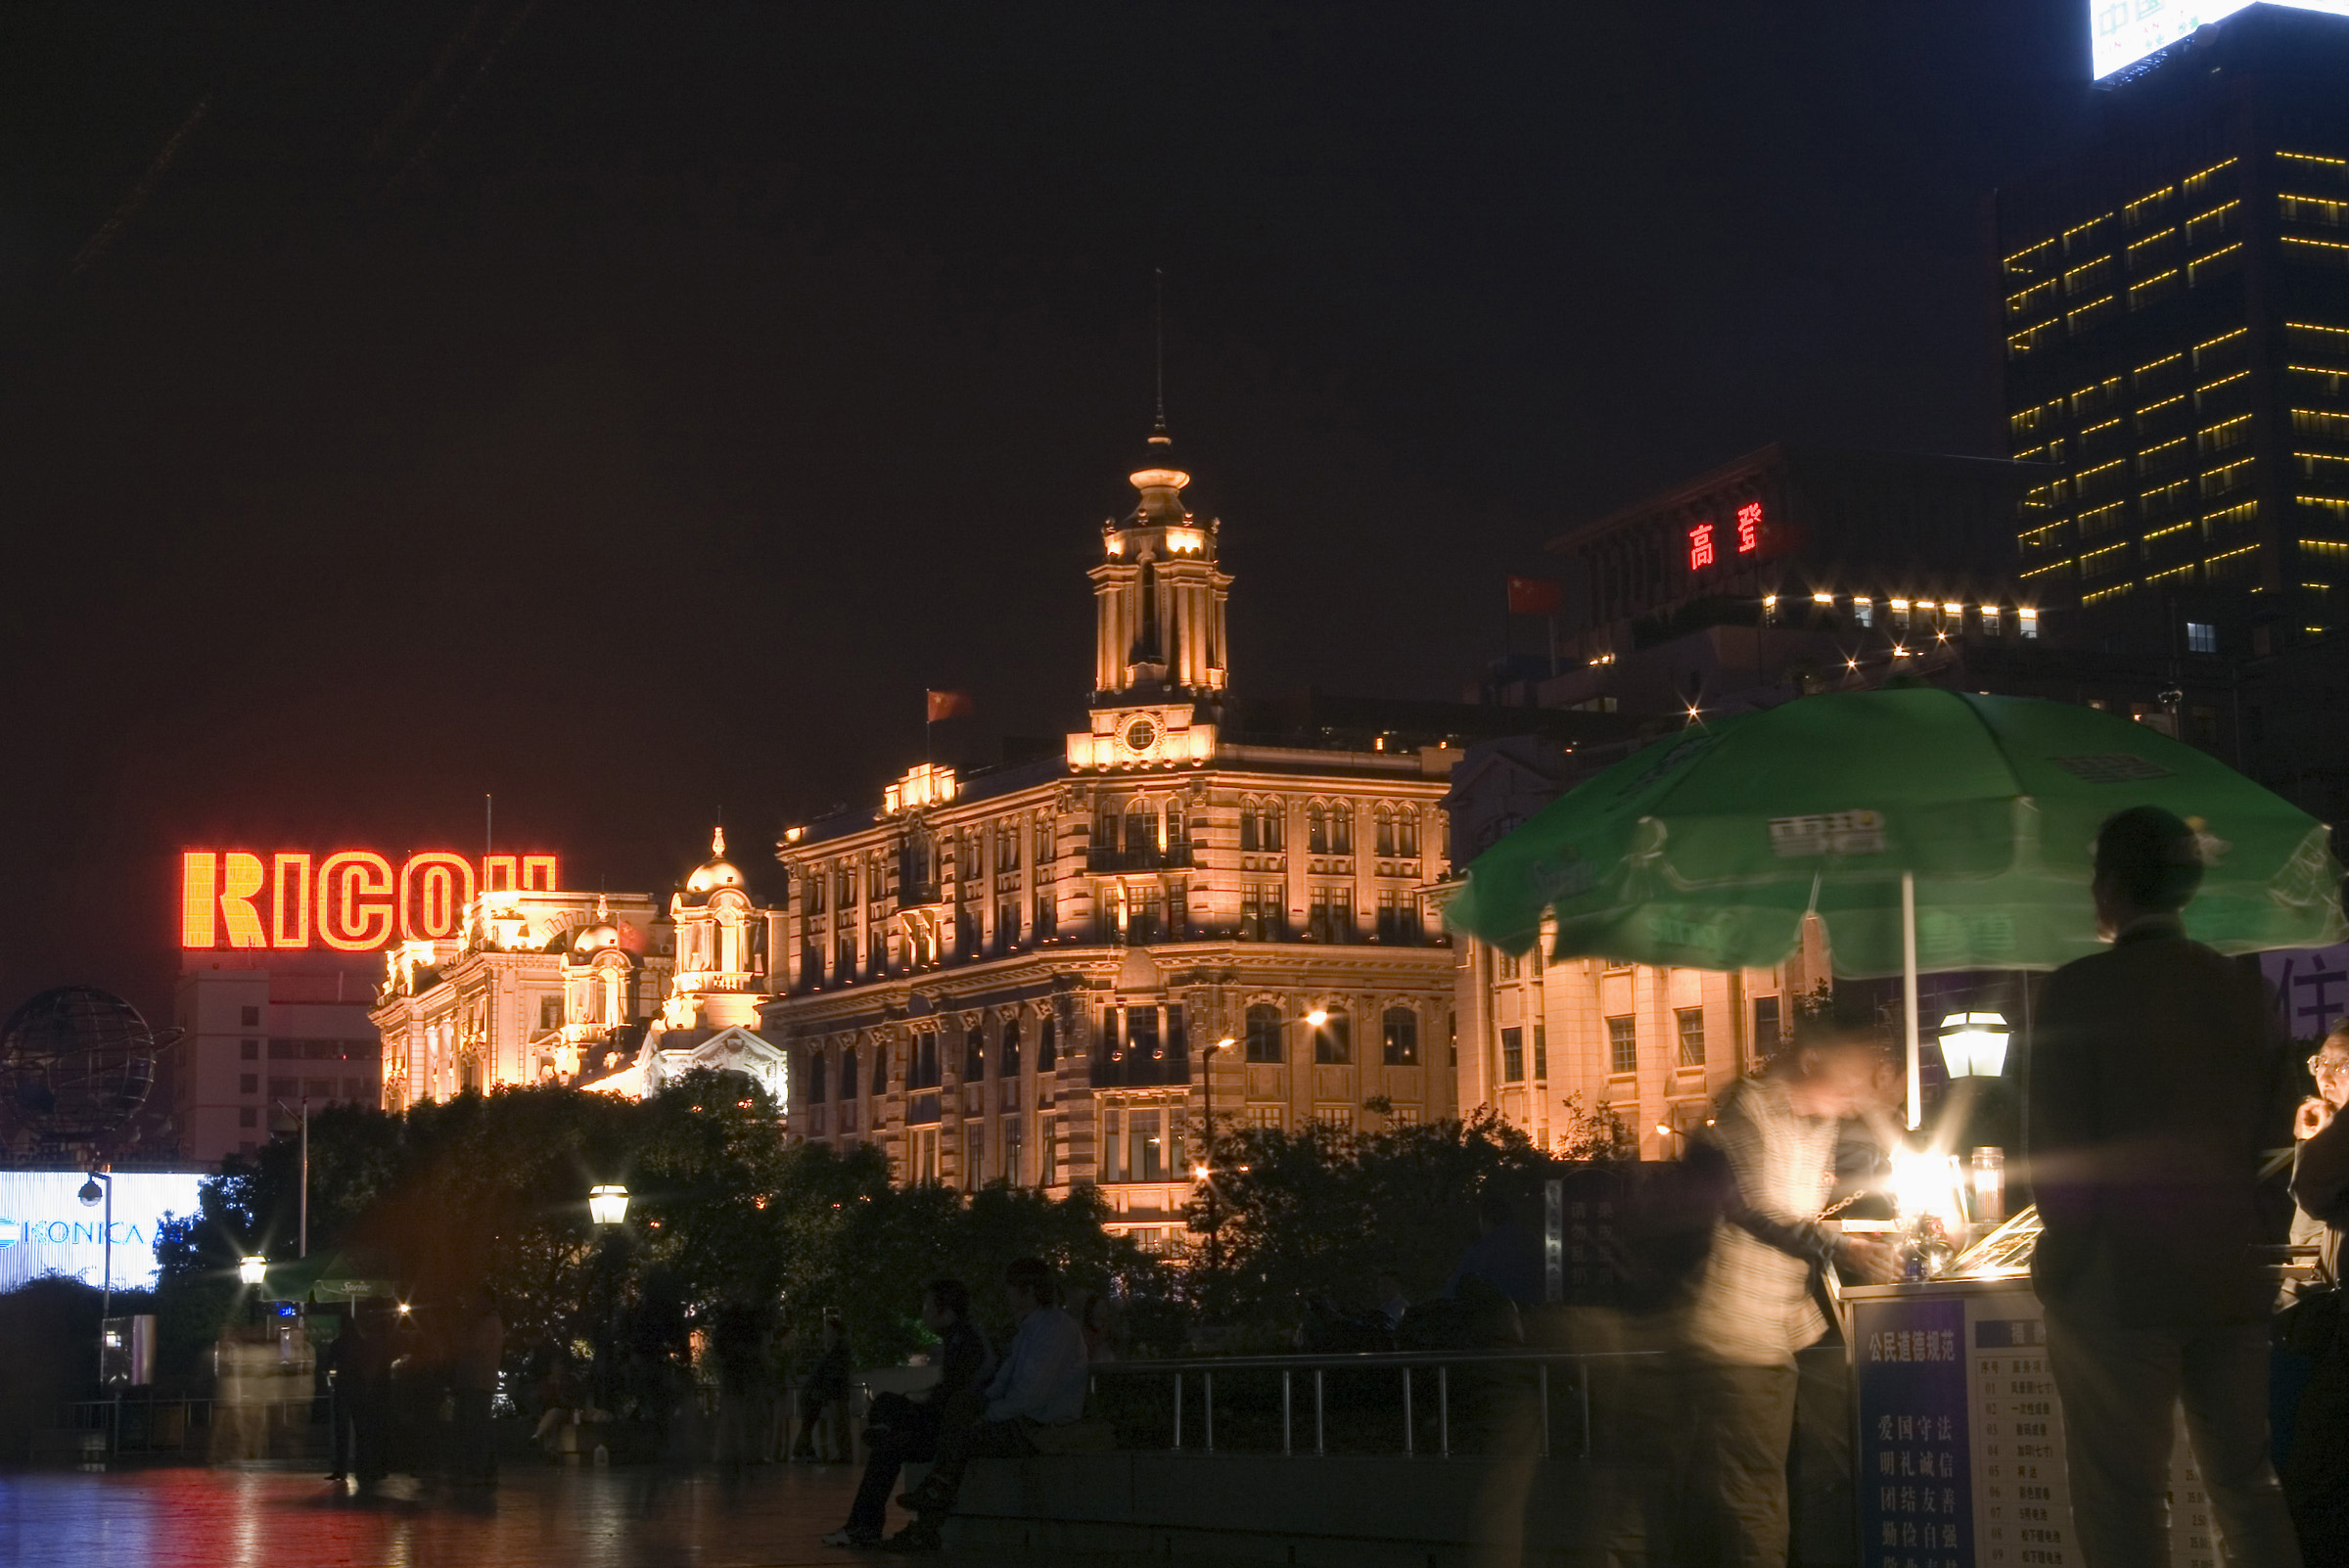 Beautiful Night View of Famous Architectural Customs House at the Bund in Shanghai China.